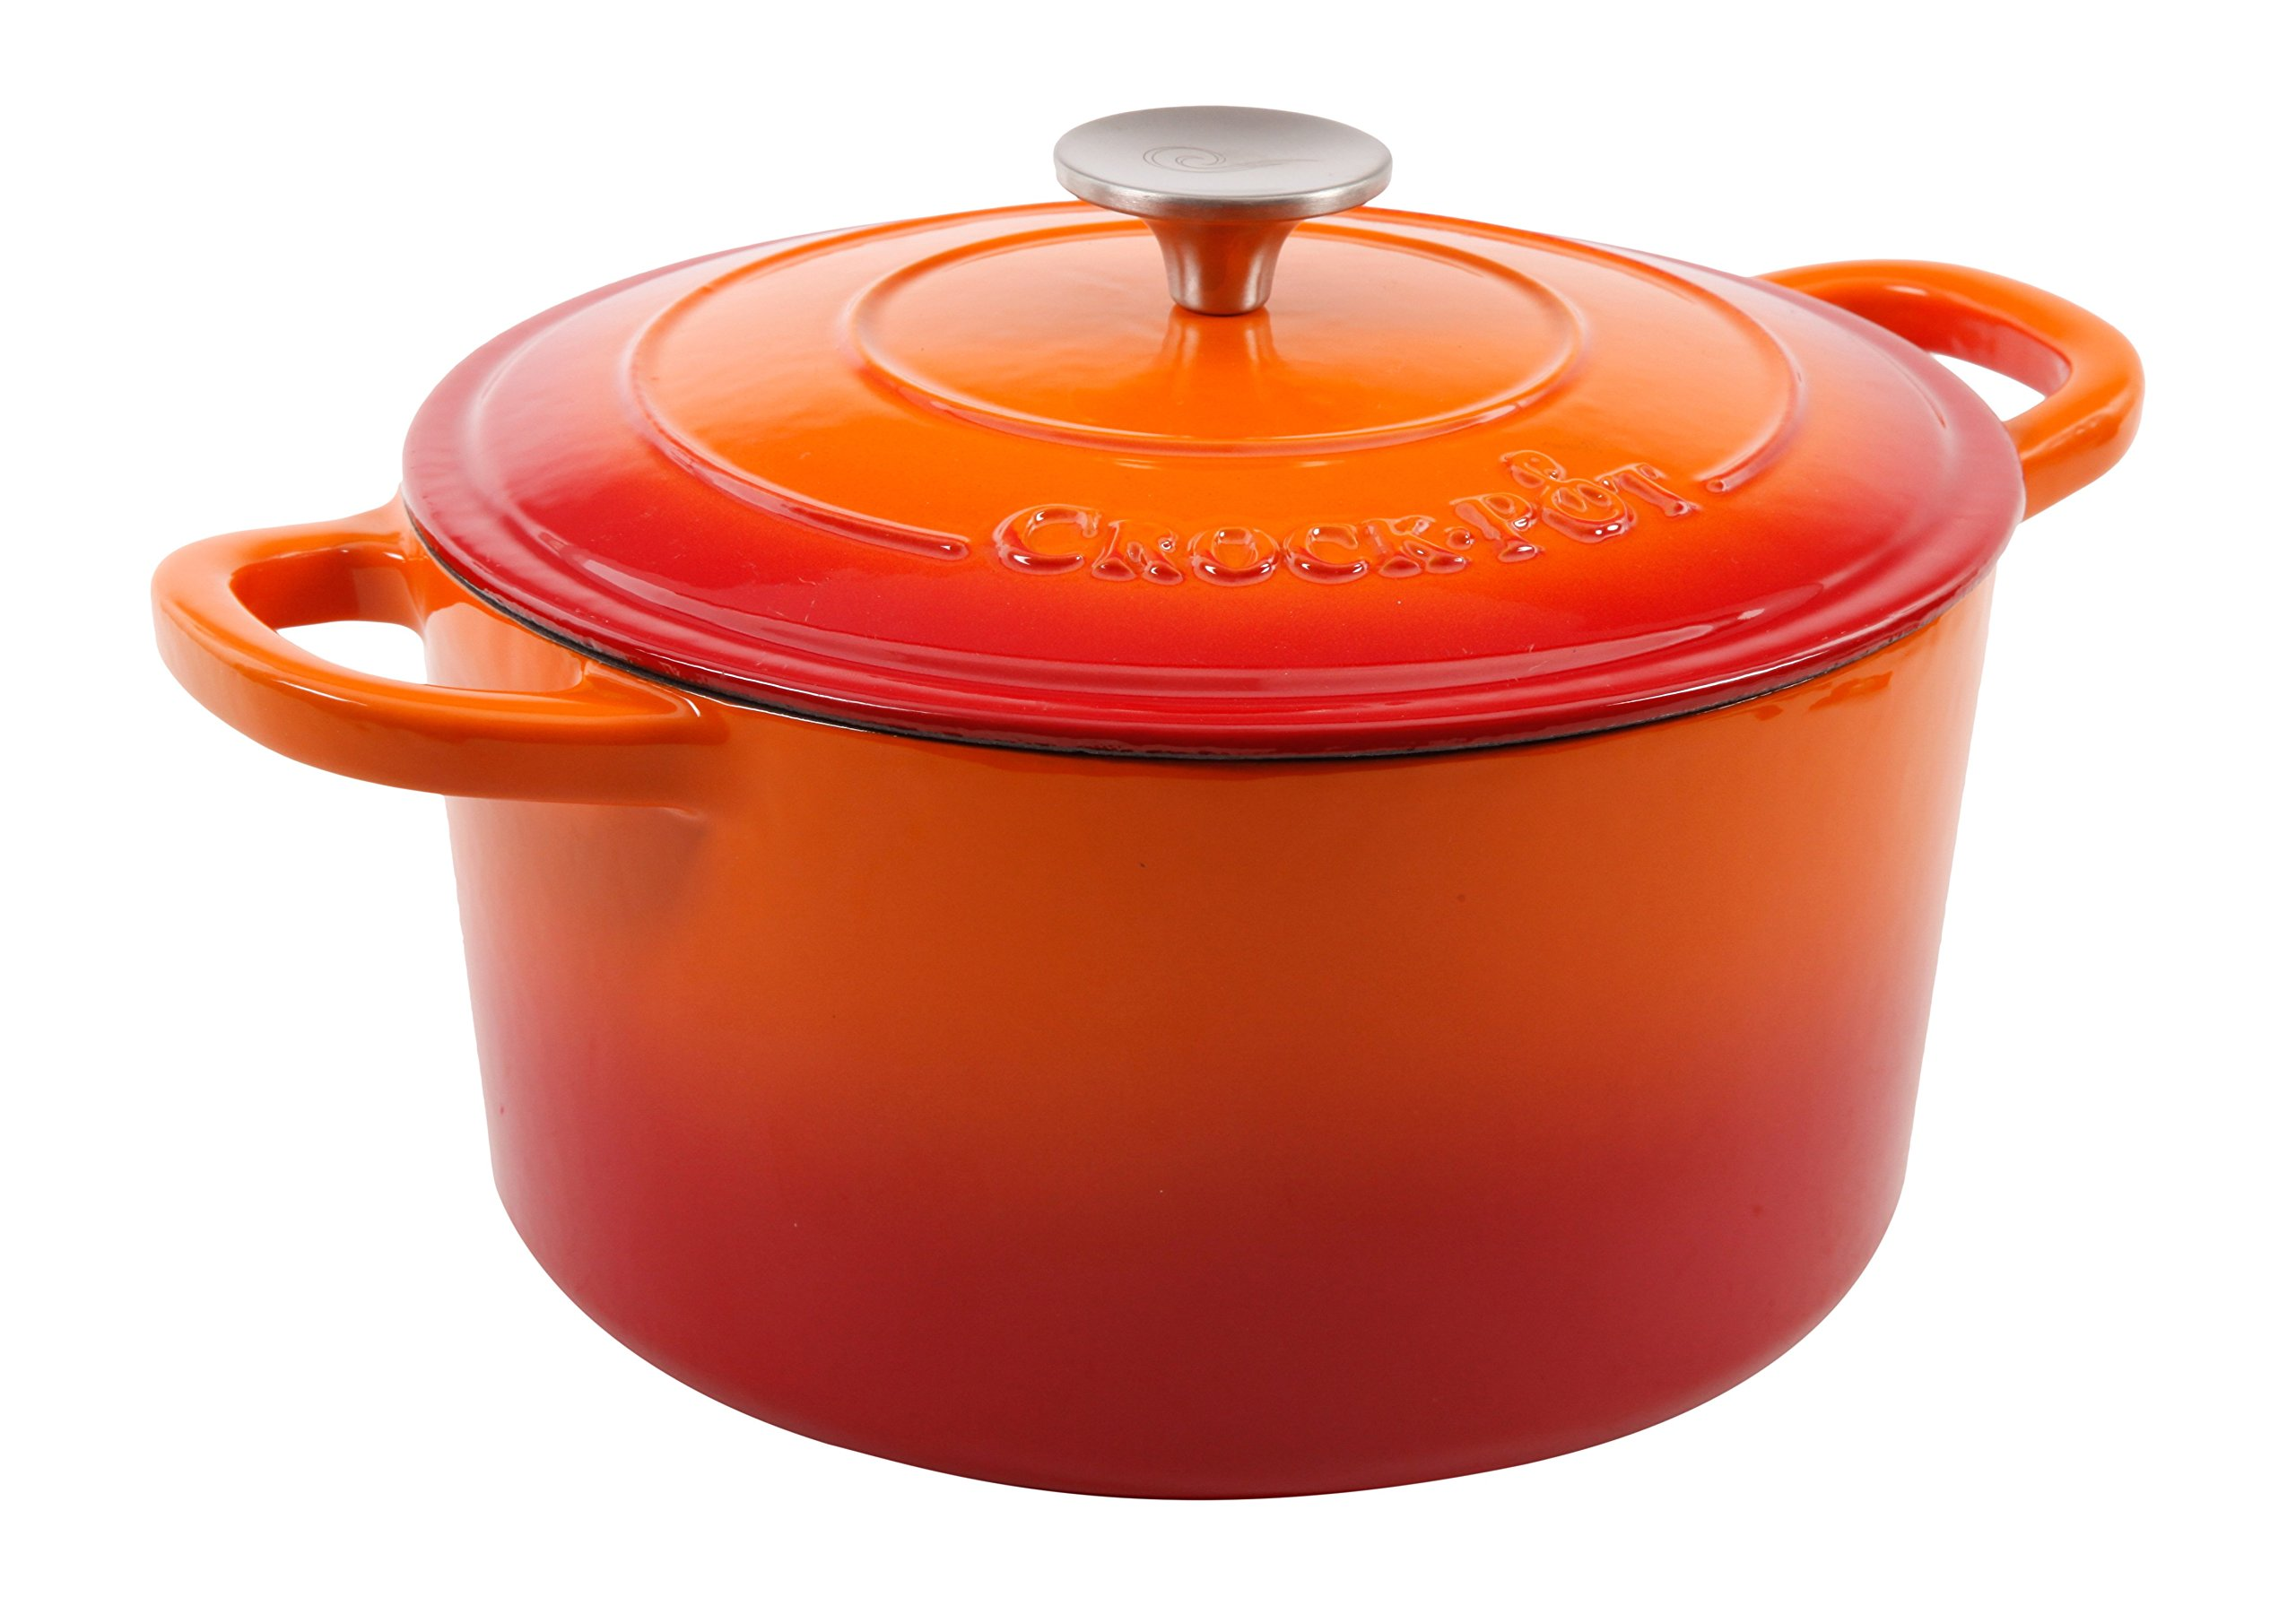 Crock Pot Artisan 5QT Enamel Cast Iron Dutch Oven, Sunset Orange by Crock-Pot